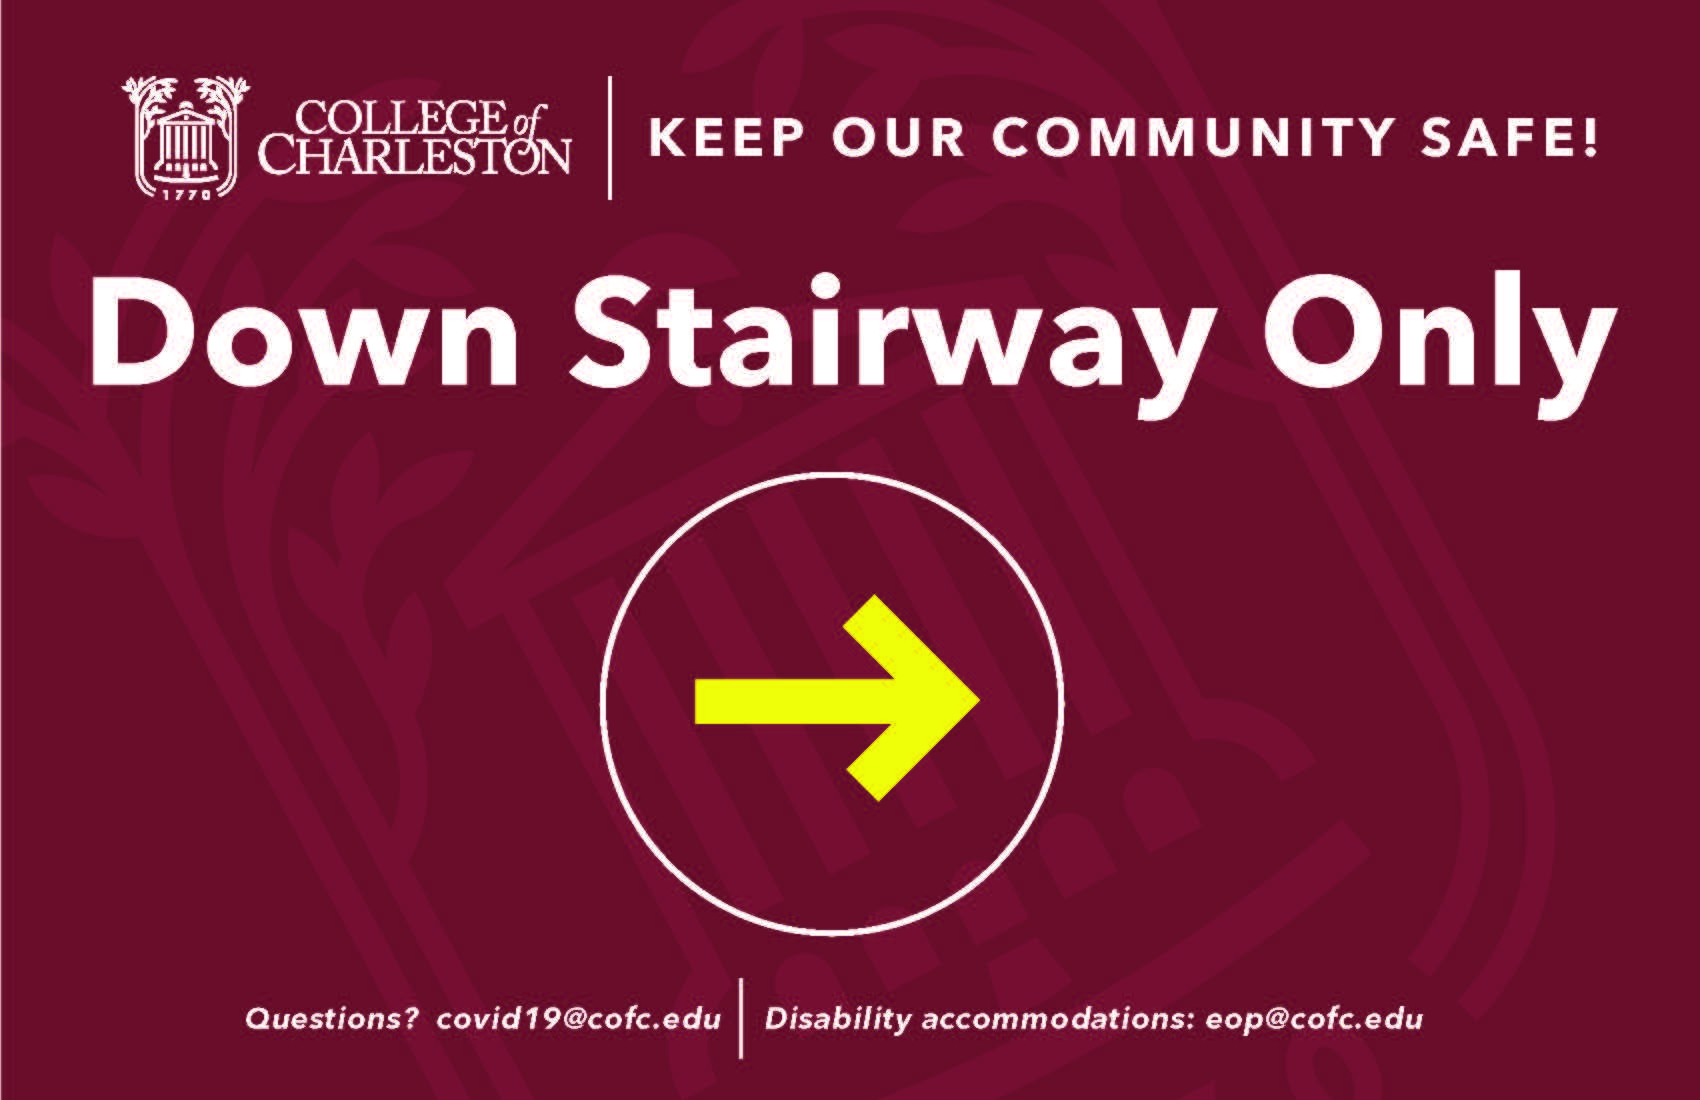 image of signage for down stairway only